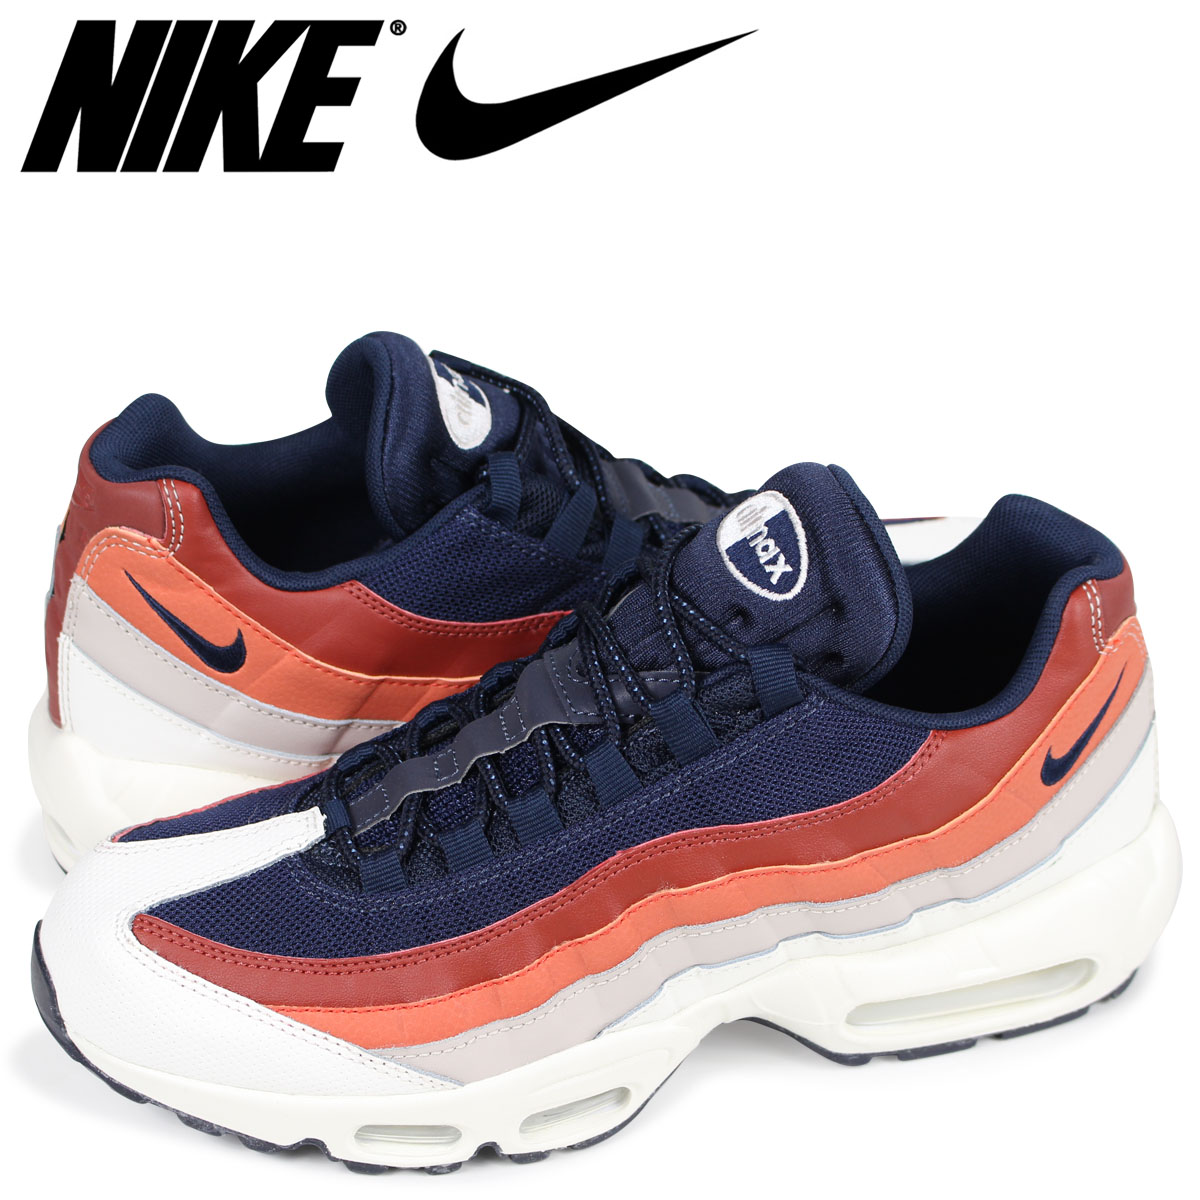 on sale 770f3 f1acb Nike NIKE Air Max 95 essential sneakers men AIR MAX 95 ESSENTIAL 749,766-108  off ...